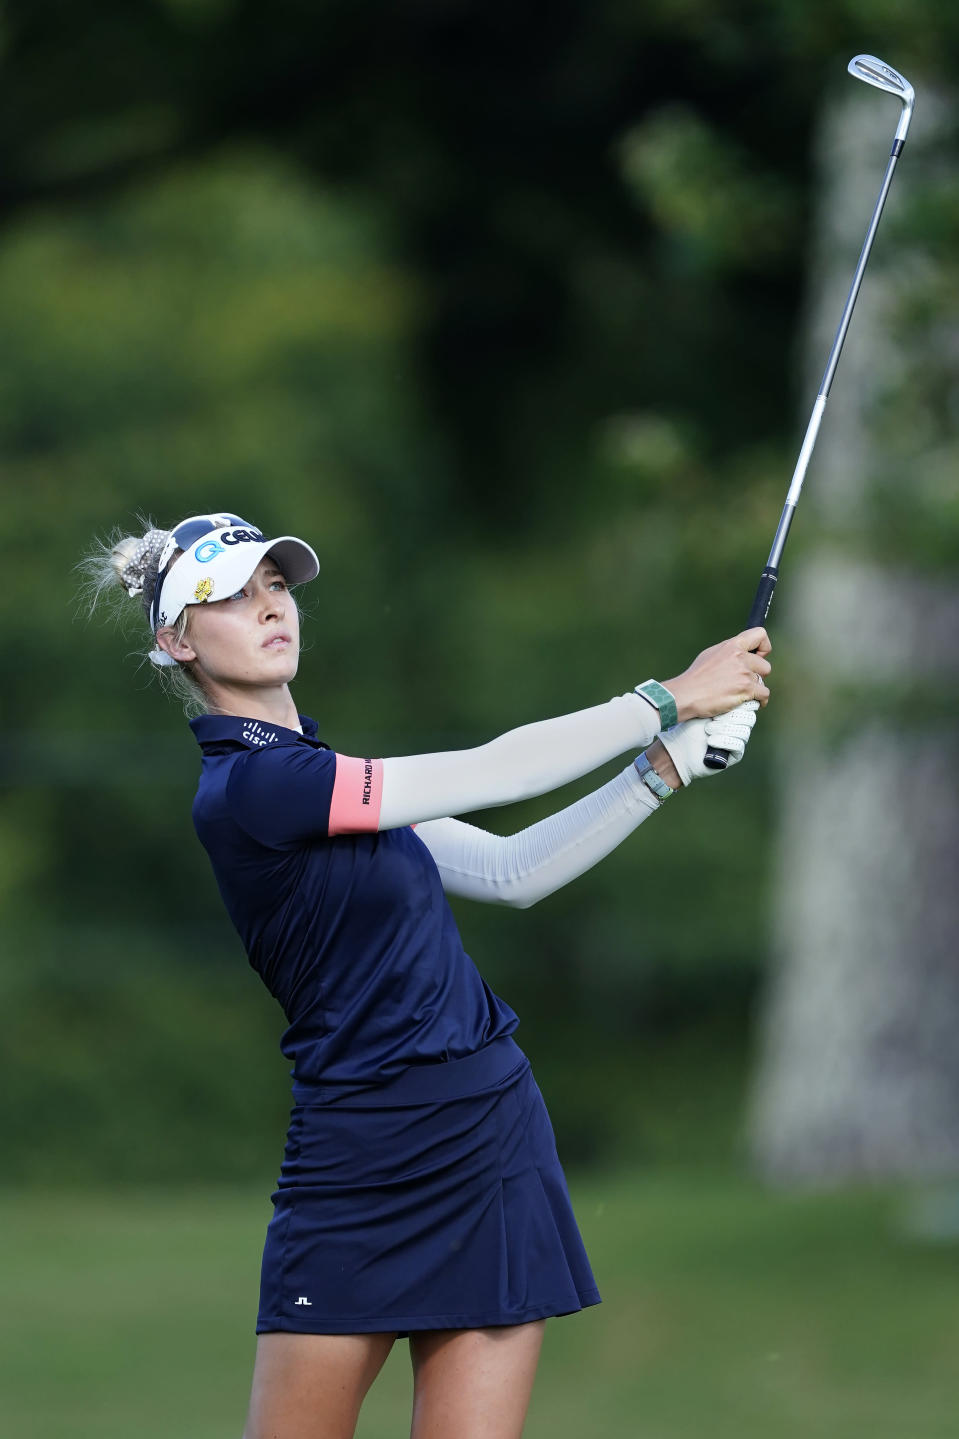 Nelly Korda watchs her shot from the ninth fairway during the second round of play in the KPMG Women's PGA Championship golf tournament Friday, June 25, 2021, in Johns Creek, Ga. (AP Photo/John Bazemore)